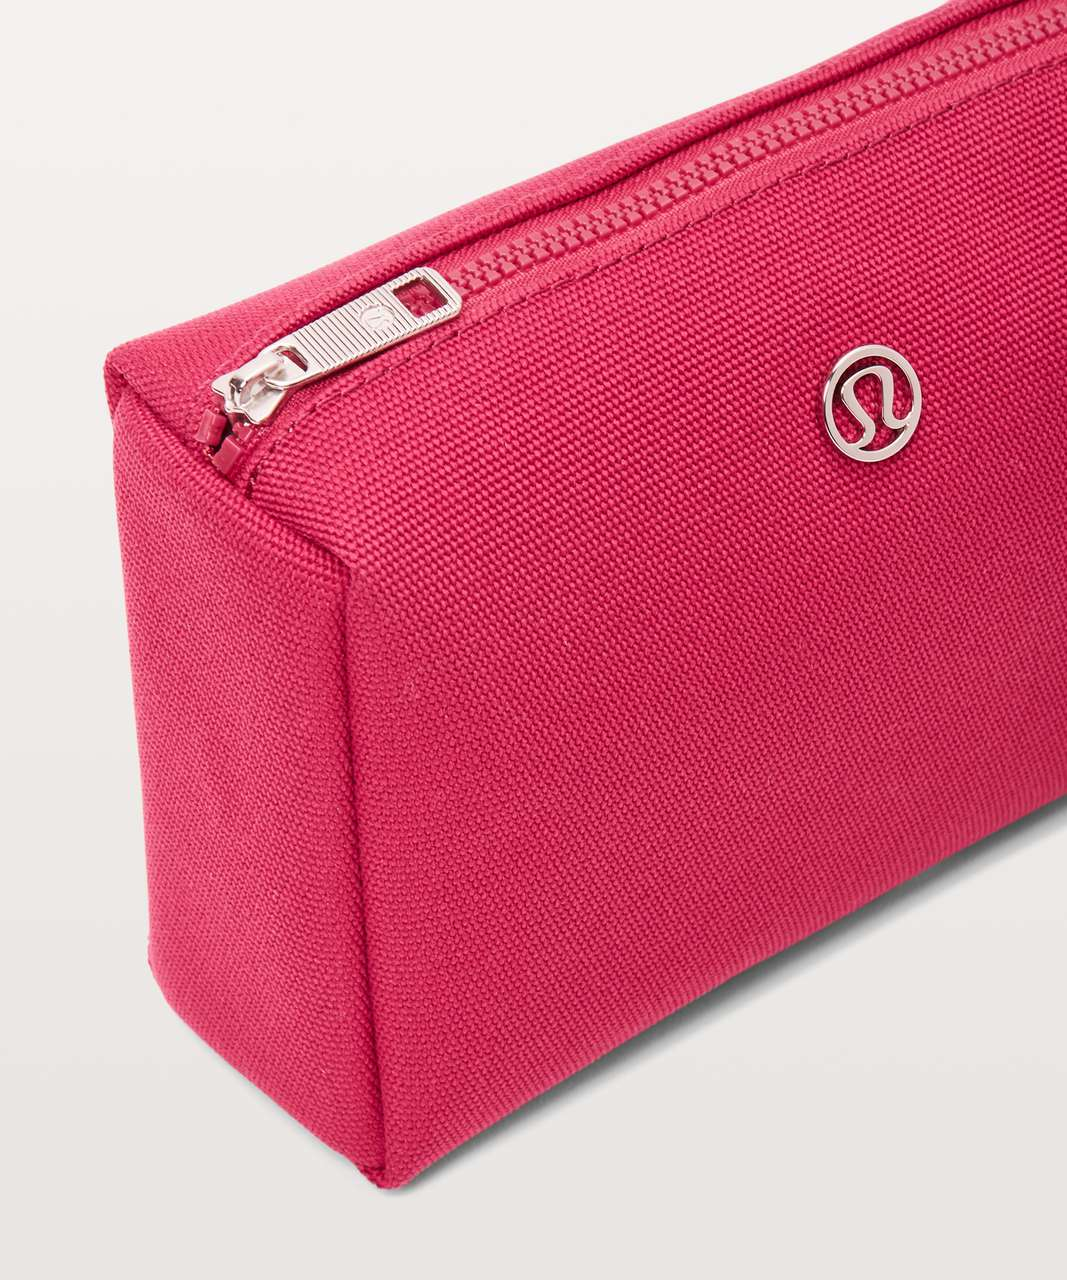 Lululemon All Your Small Things Pouch *Canvas Mini 2L - Ruby Red